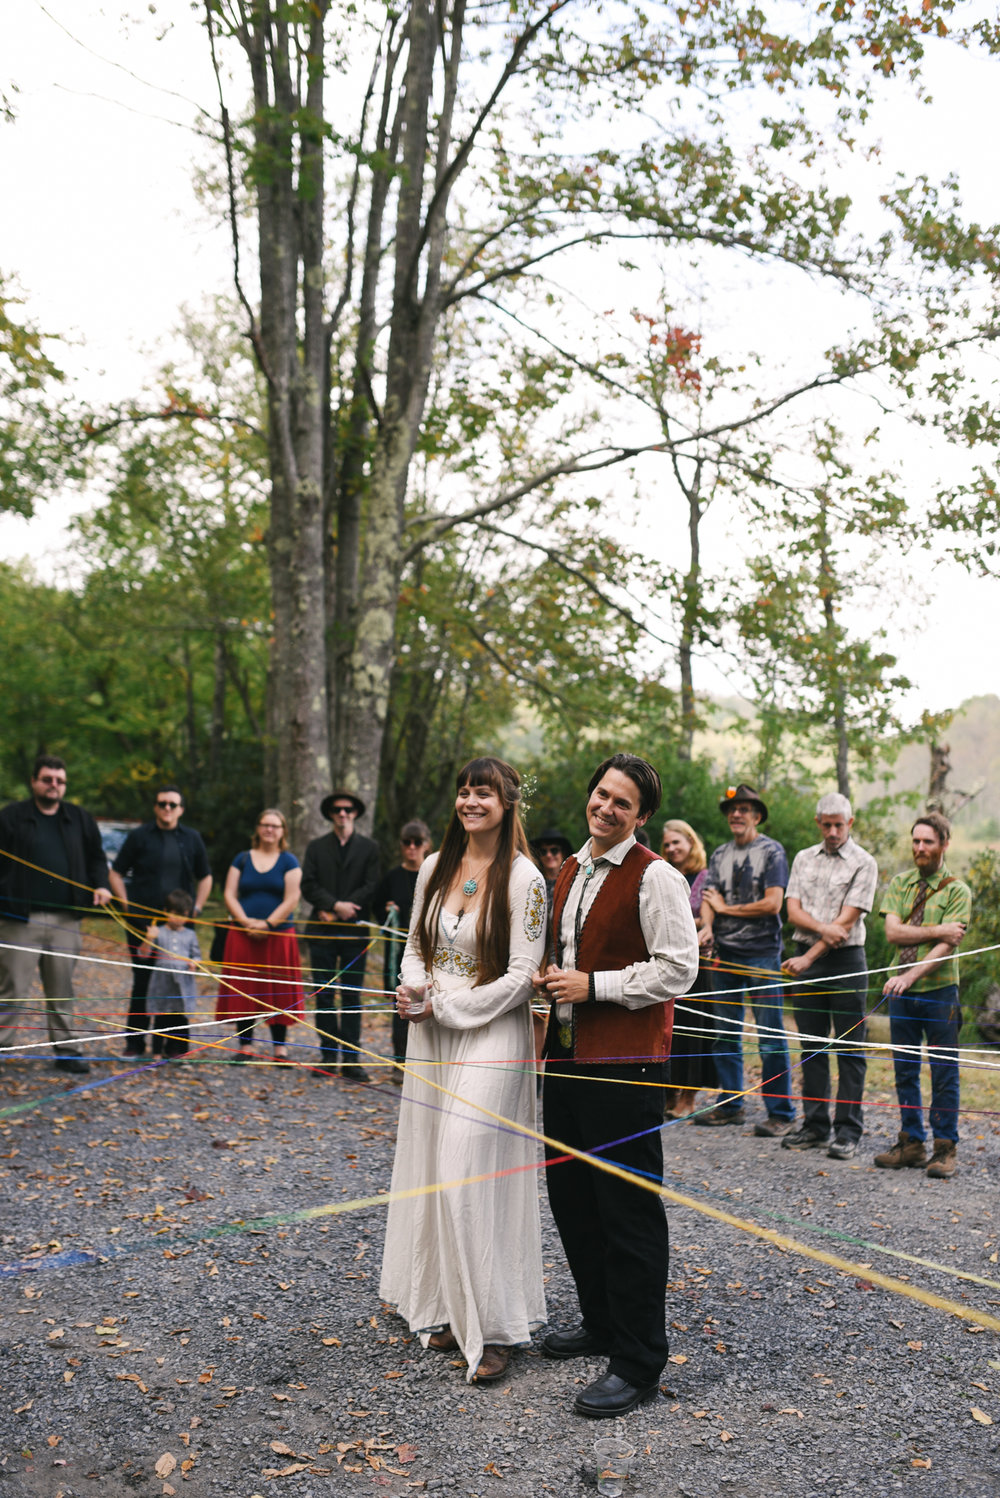 Mountain Wedding, Outdoors, Rustic, West Virginia, Maryland Wedding Photographer, DIY, Casual, bride and groom smiling together inside circle of friends, yarn ceremony